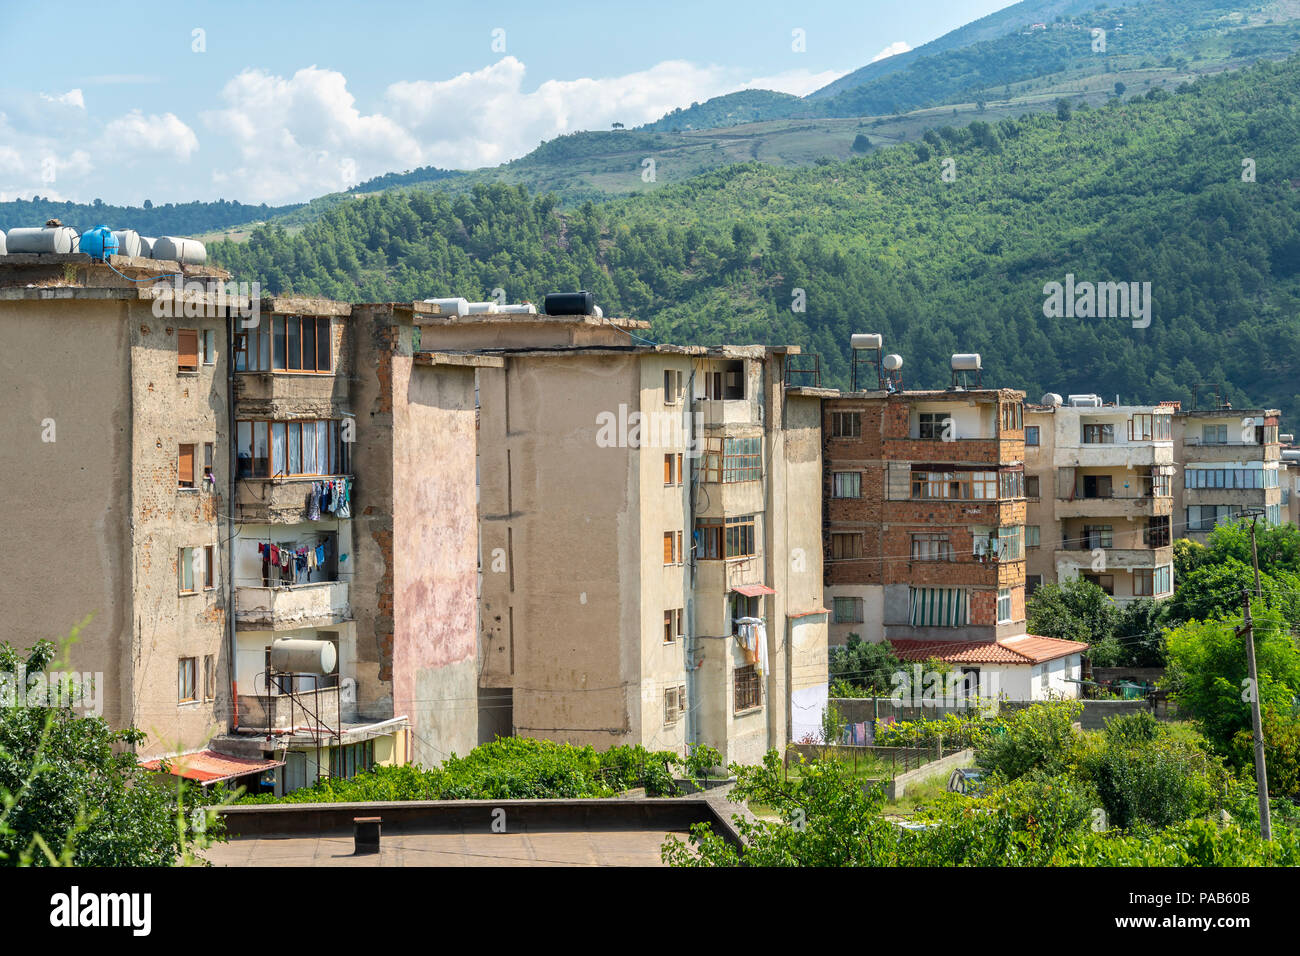 Typical old communist era apartment blocks of poor quality in the town of Memaliaj in Southern Albania. - Stock Image